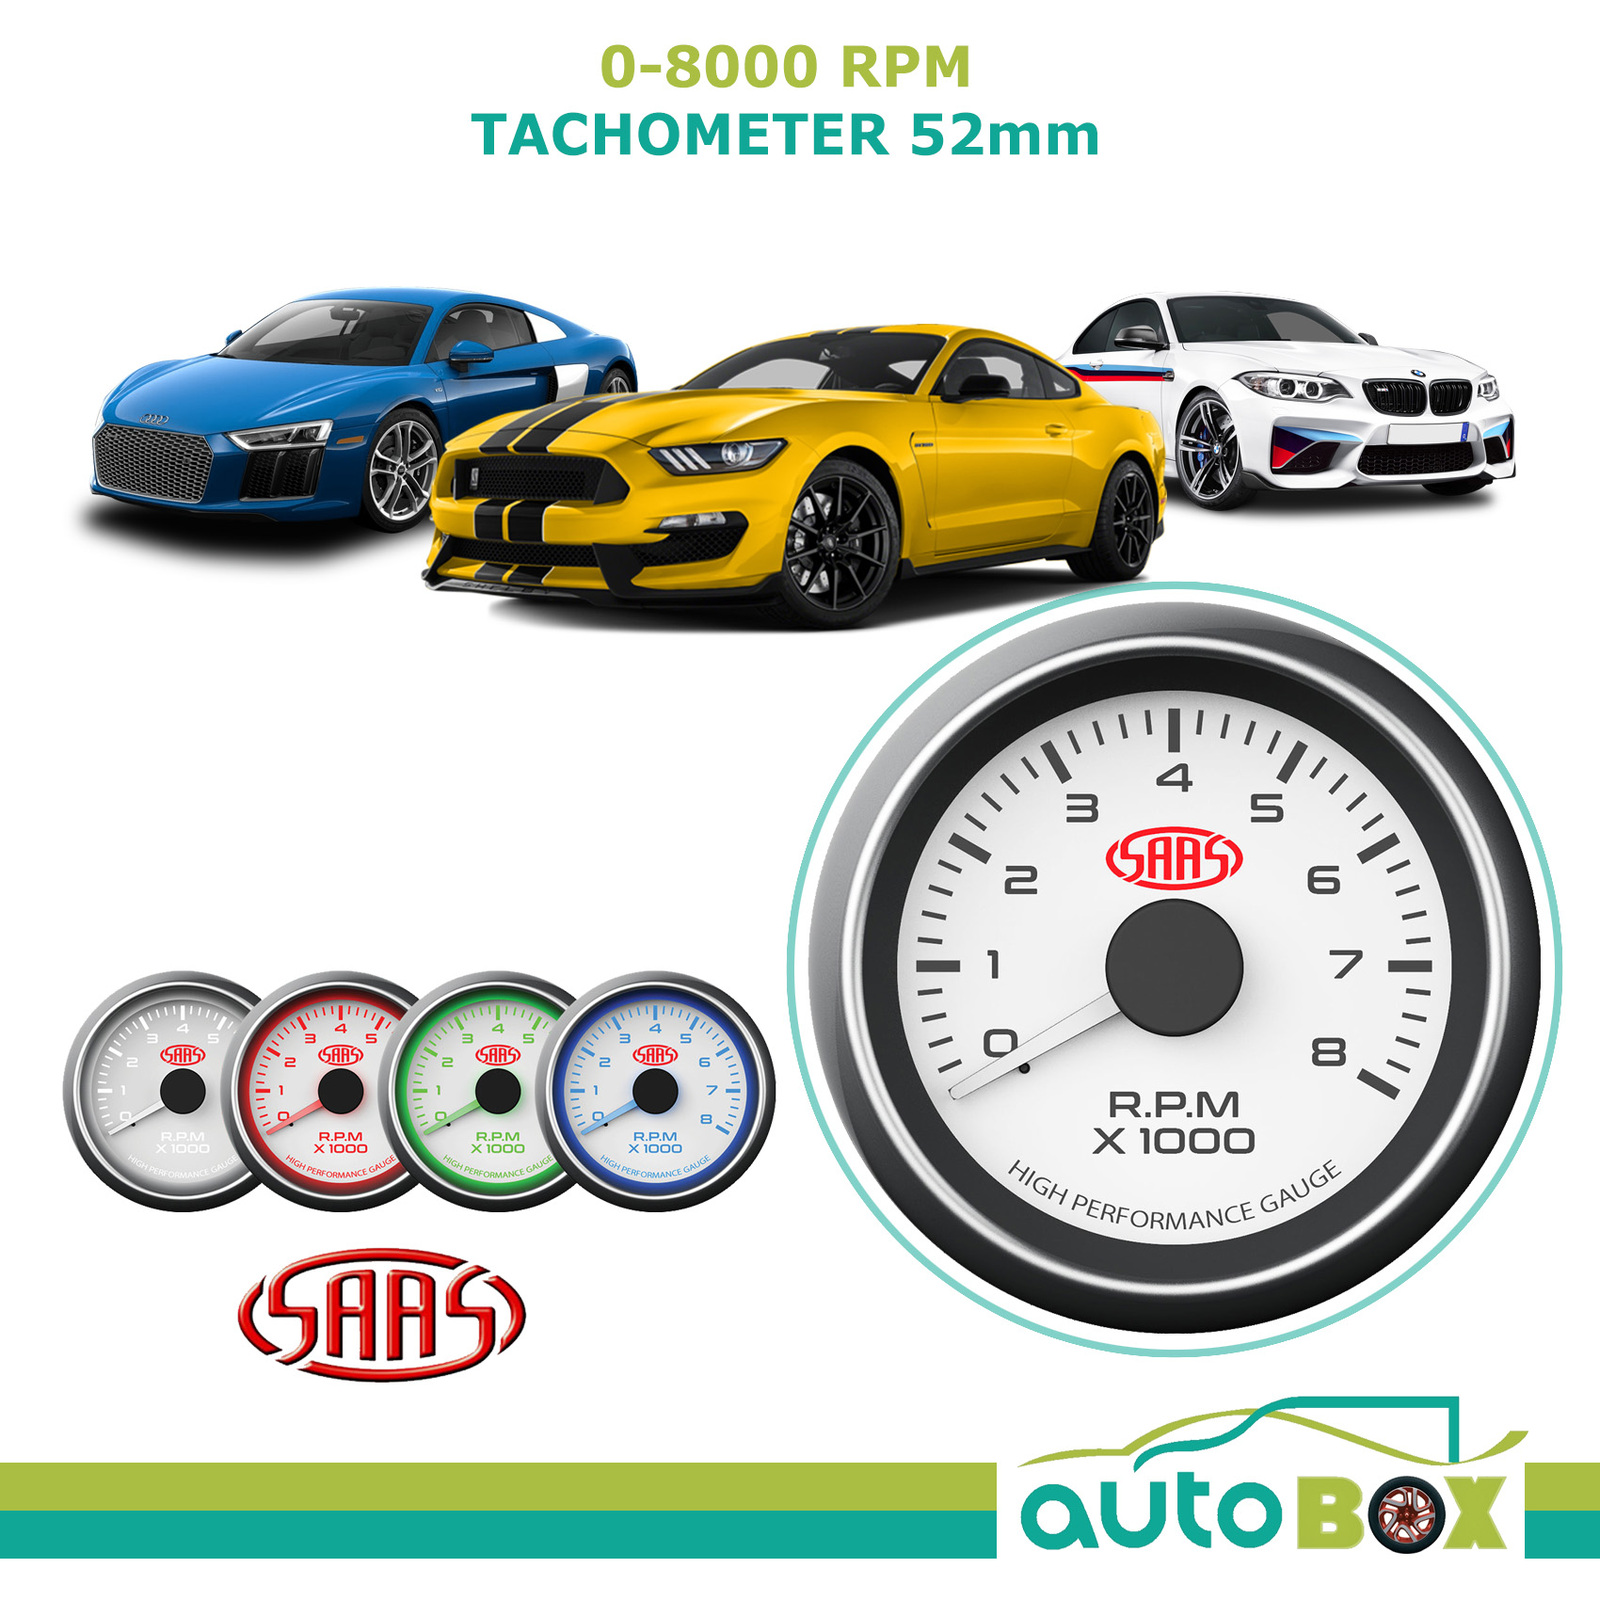 Saas Performance Tachometer 8000 Rpm Analog White Face Gauge 52mm 4 Auto Wiring Diagram Colour Tacho